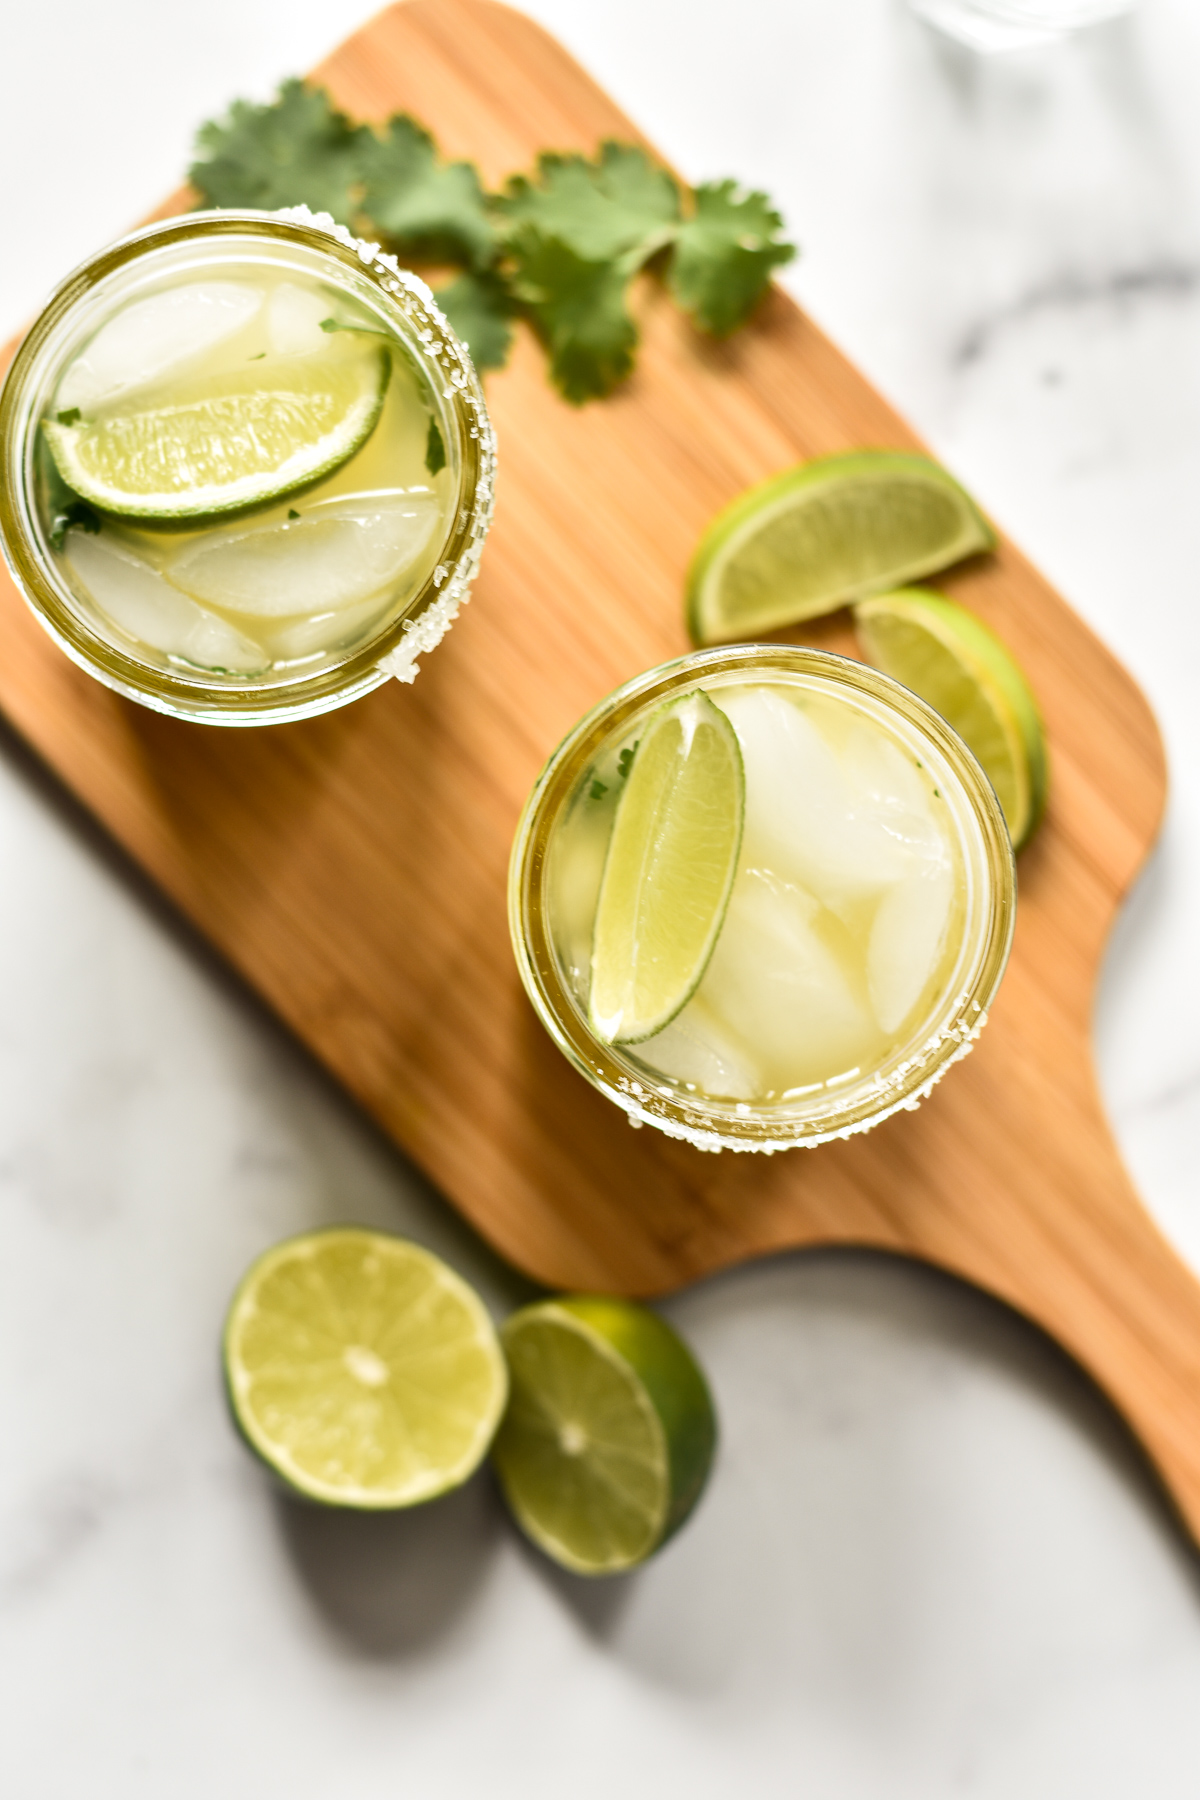 two pineapple cilantro margaritas on a wooden cutting board with limes and cilantro